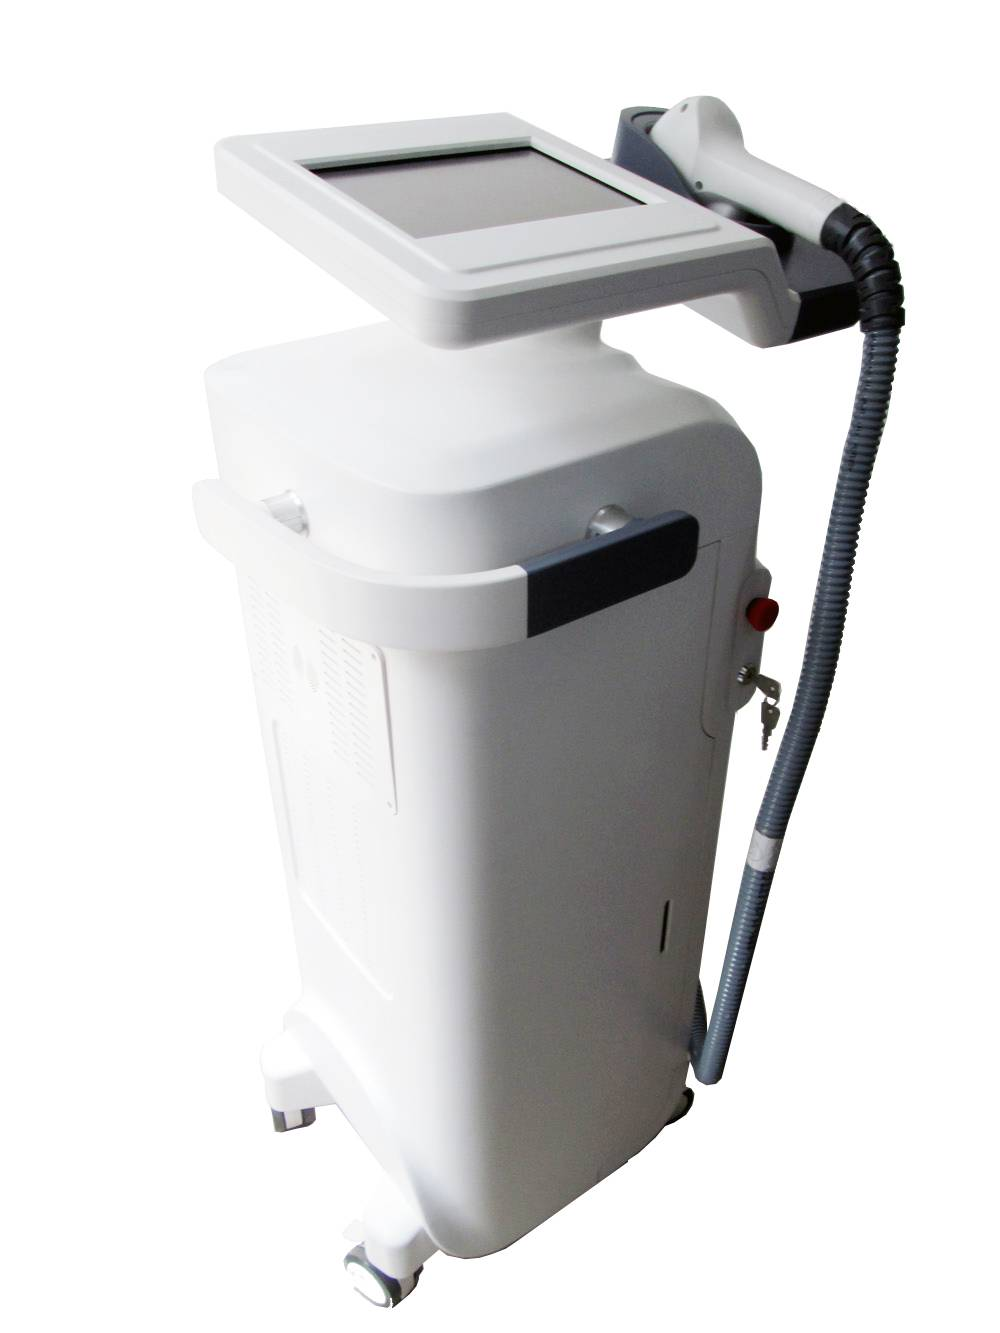 808nm Diode Laser Hair Removal System LD150